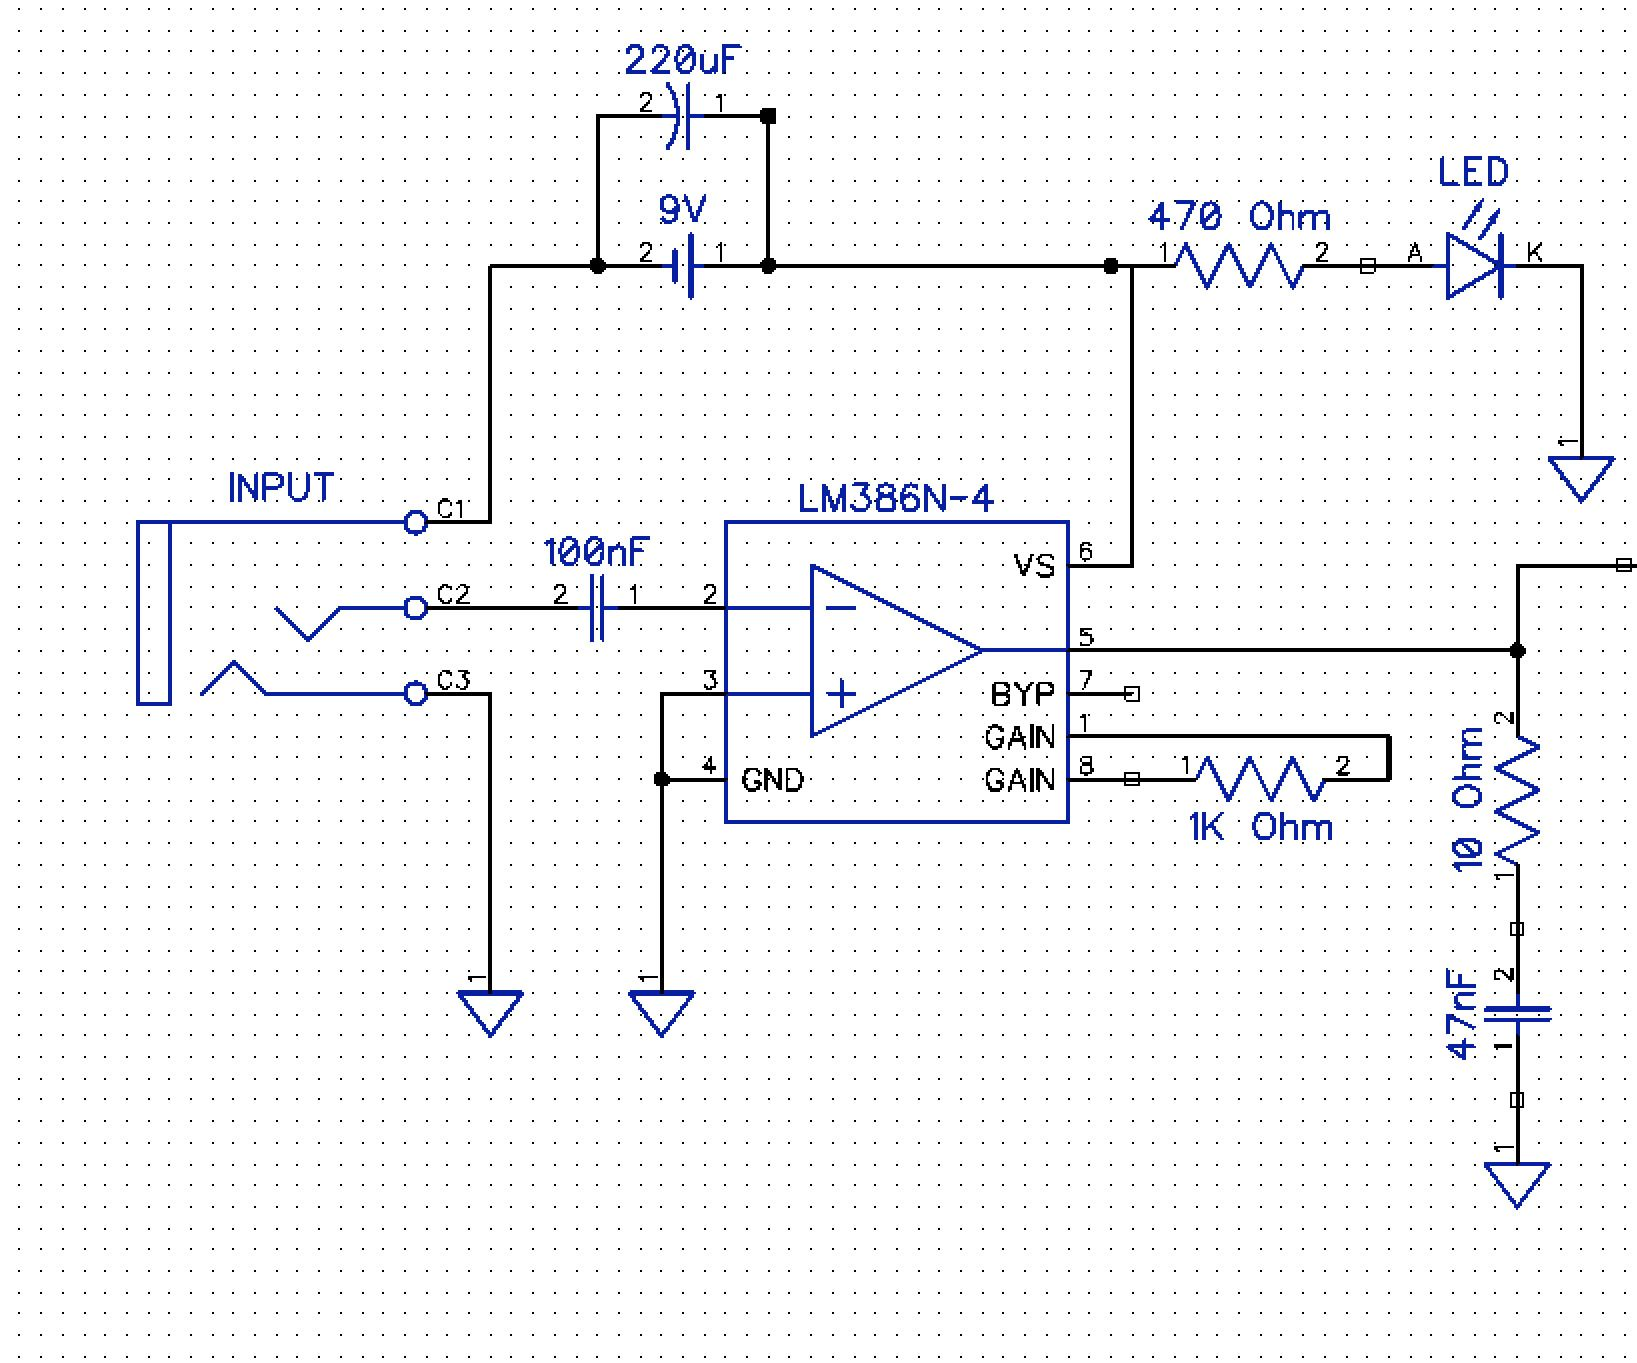 medium resolution of from schematic to protoboard building a simple lm386 guitar amp on a dip protoboard